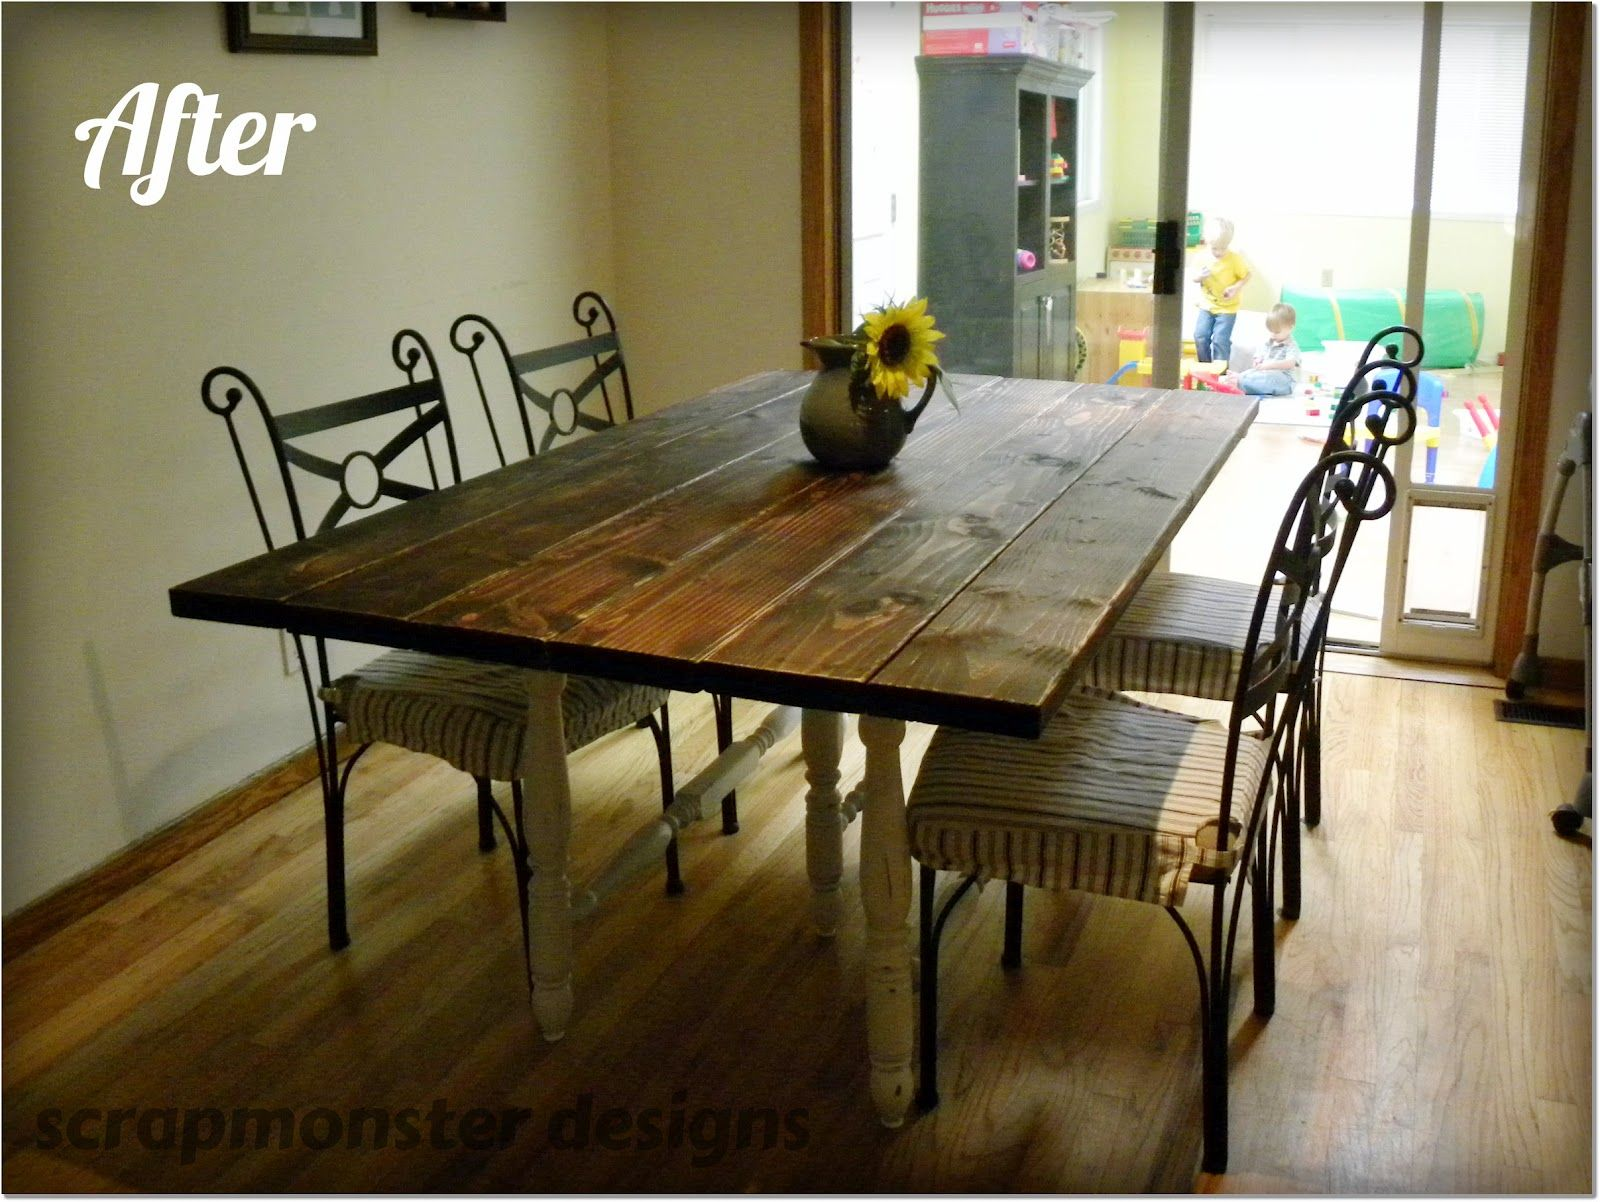 Scrapmonster Rustic Dining Table Makeover  Interior Design Pleasing Rustic Kitchen Tables Design Inspiration